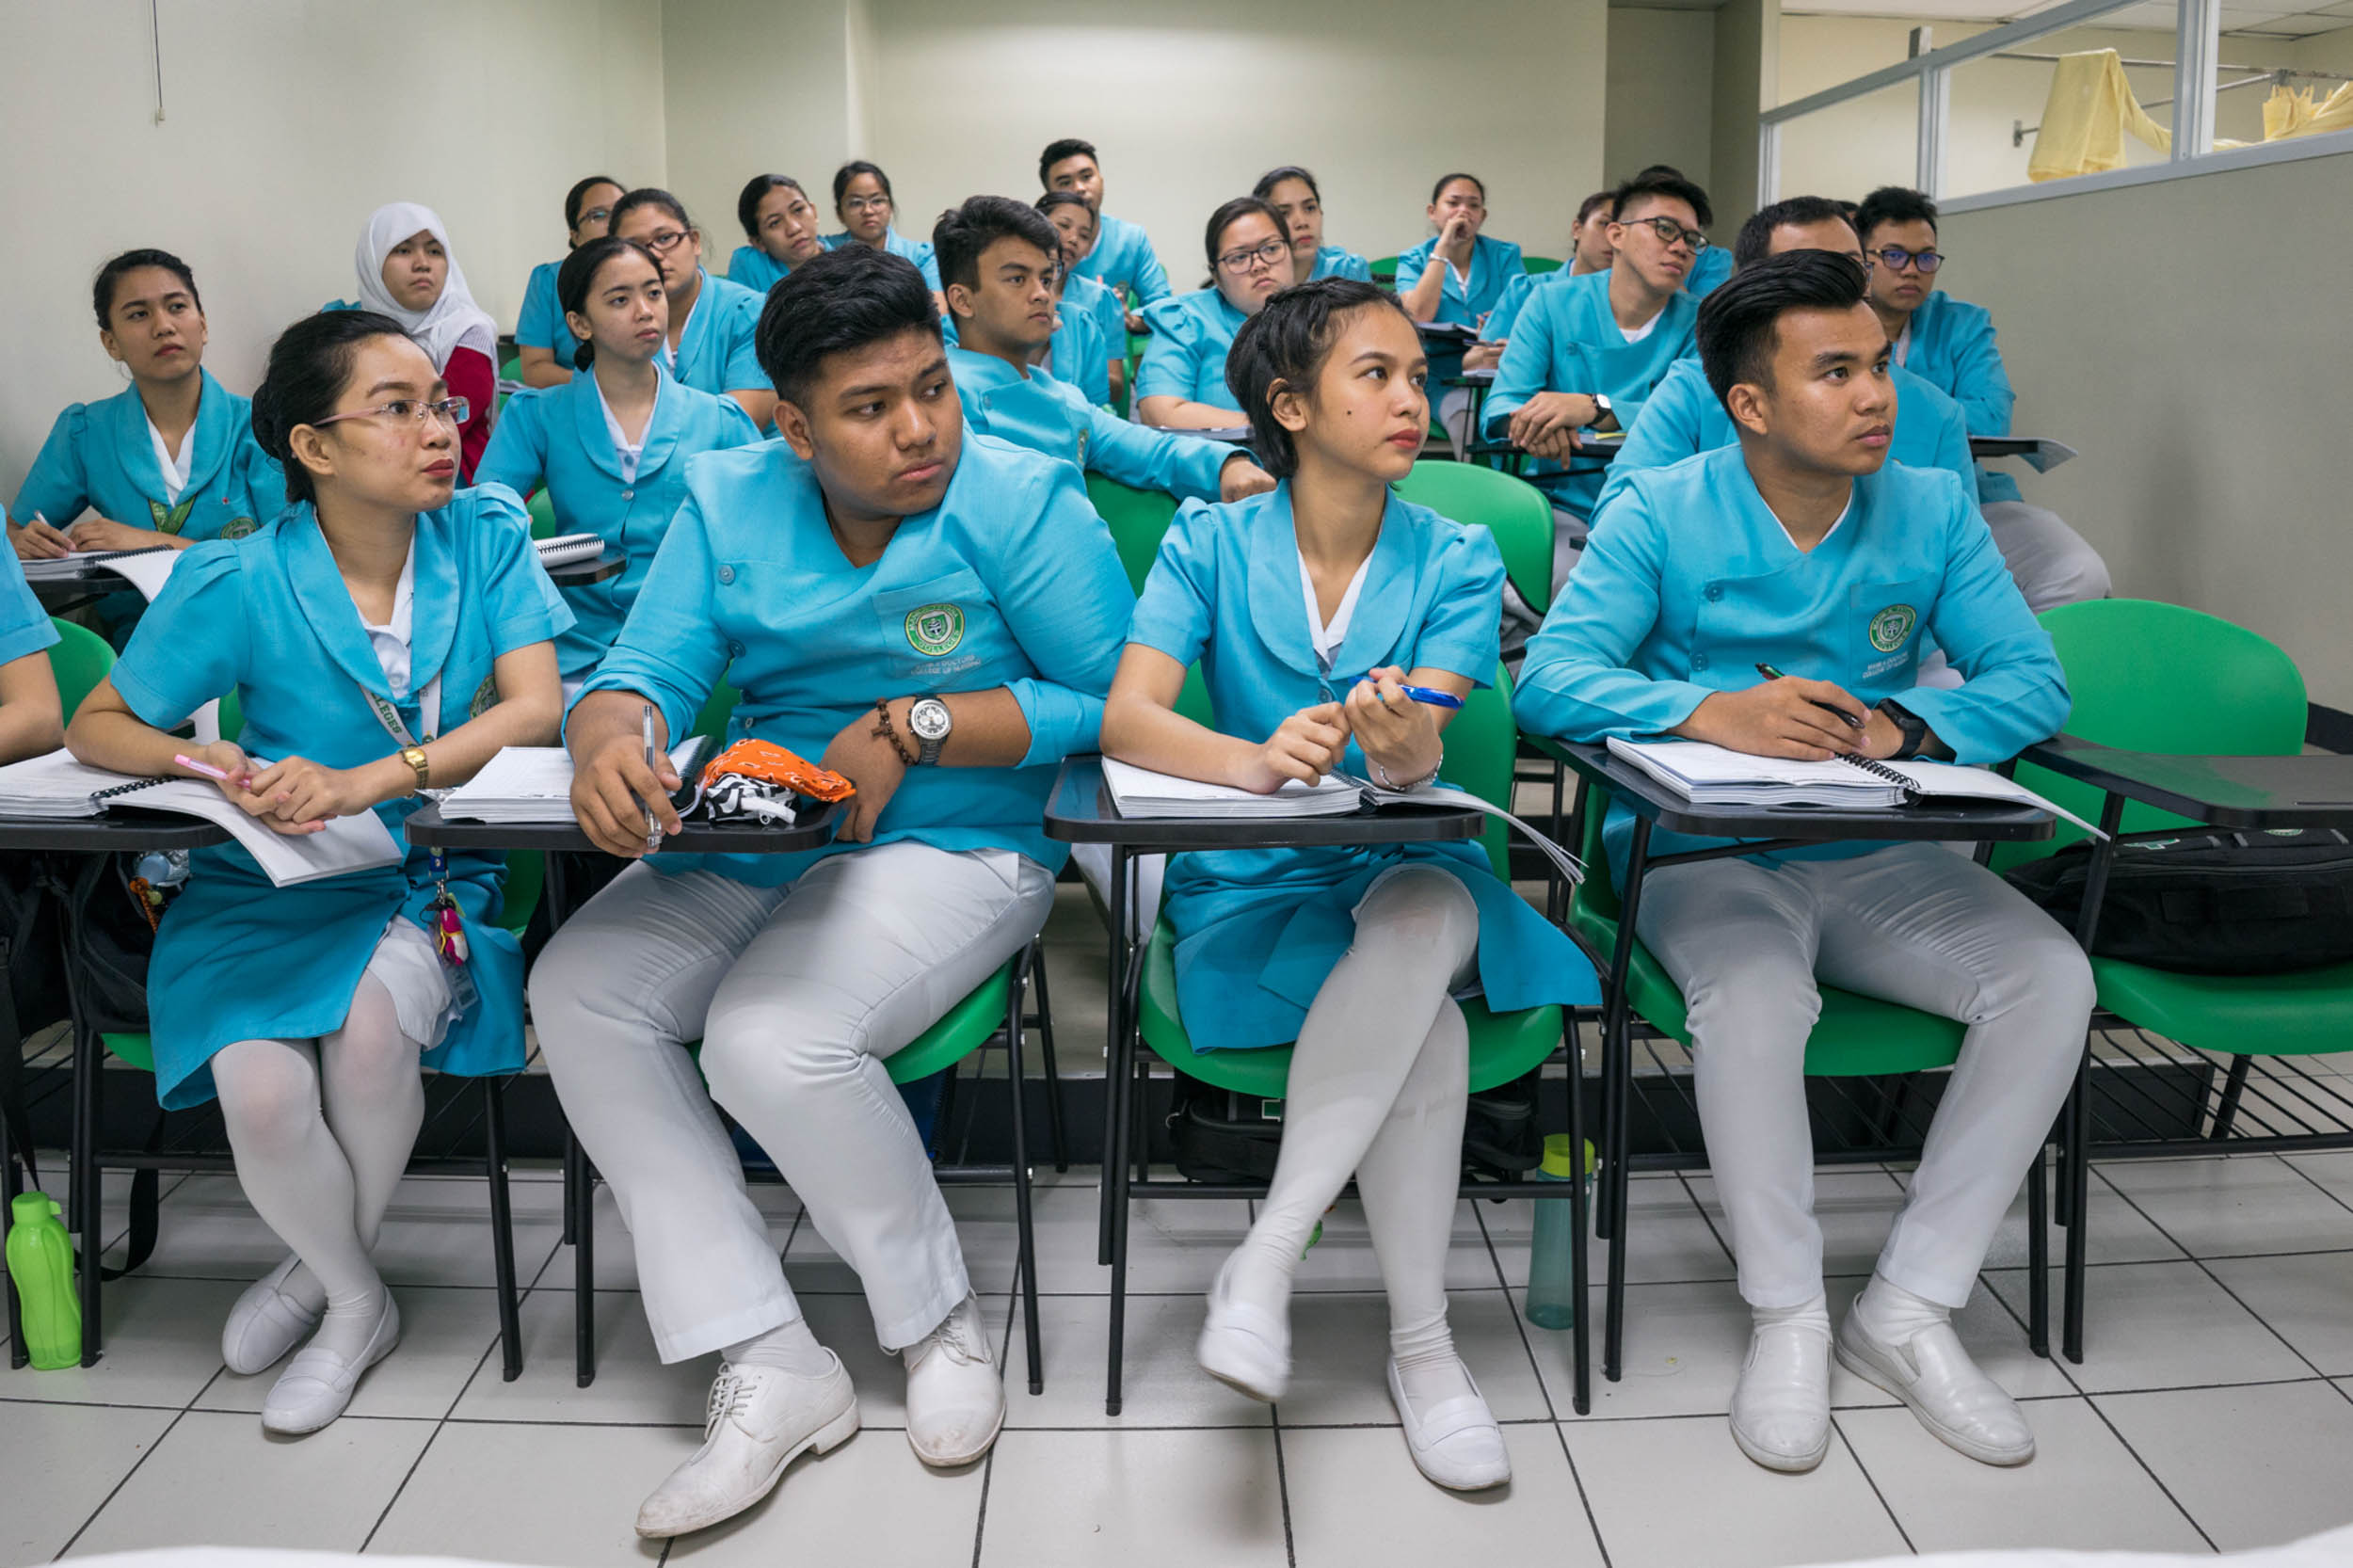 For decades the Philippine government has facilitated migration abroad as a way to develop the country. A sprawling trade school industry helps give Filipinos needed skills. 